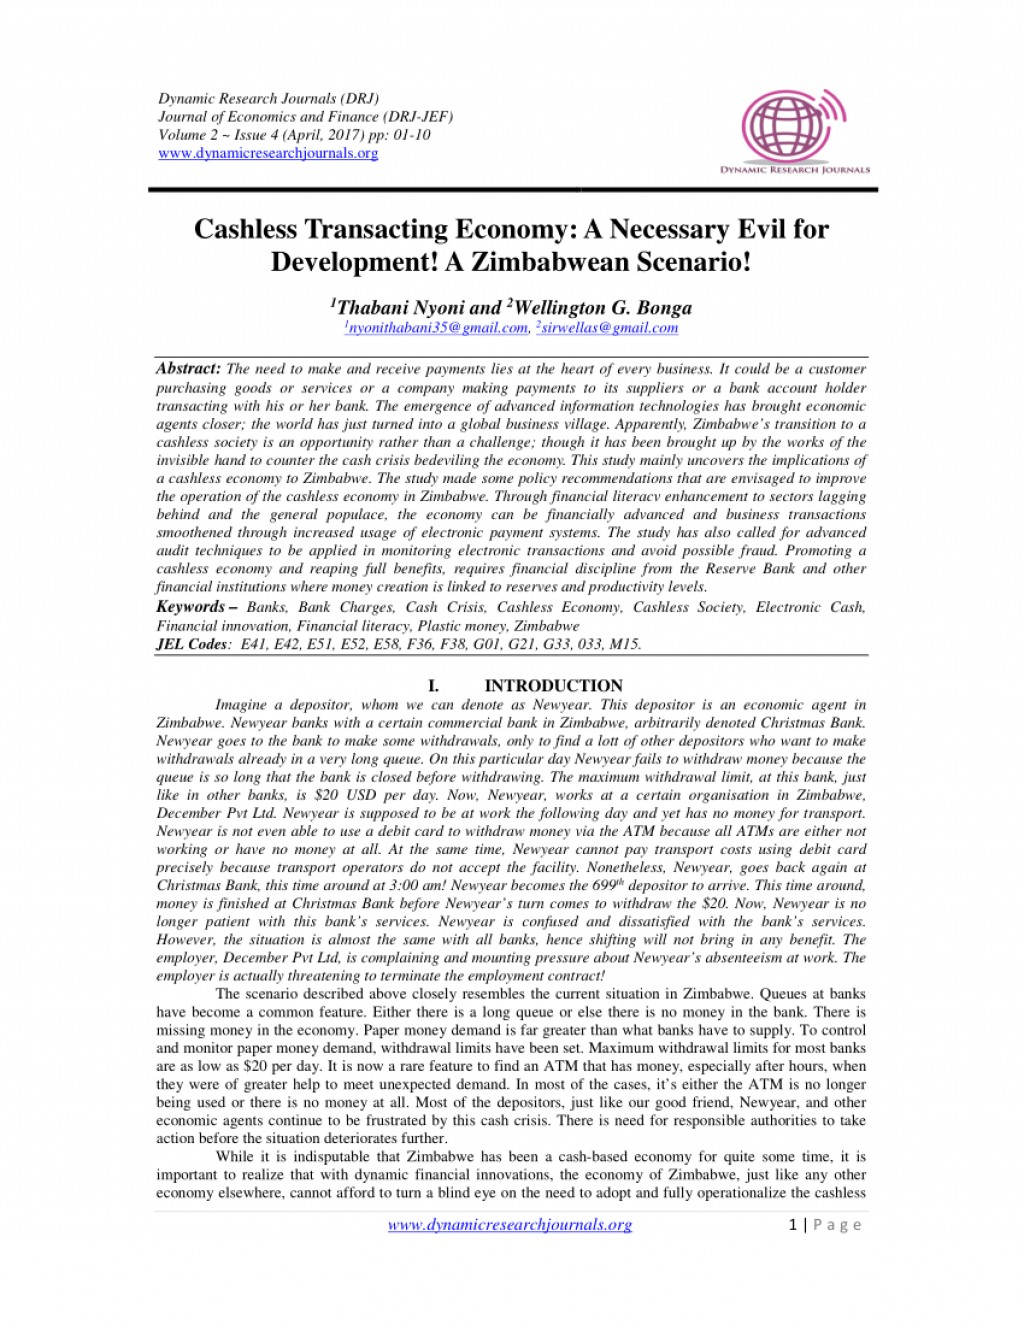 007 Cashless Economy Research Paper Frightening Cash To Papers Pdf Large